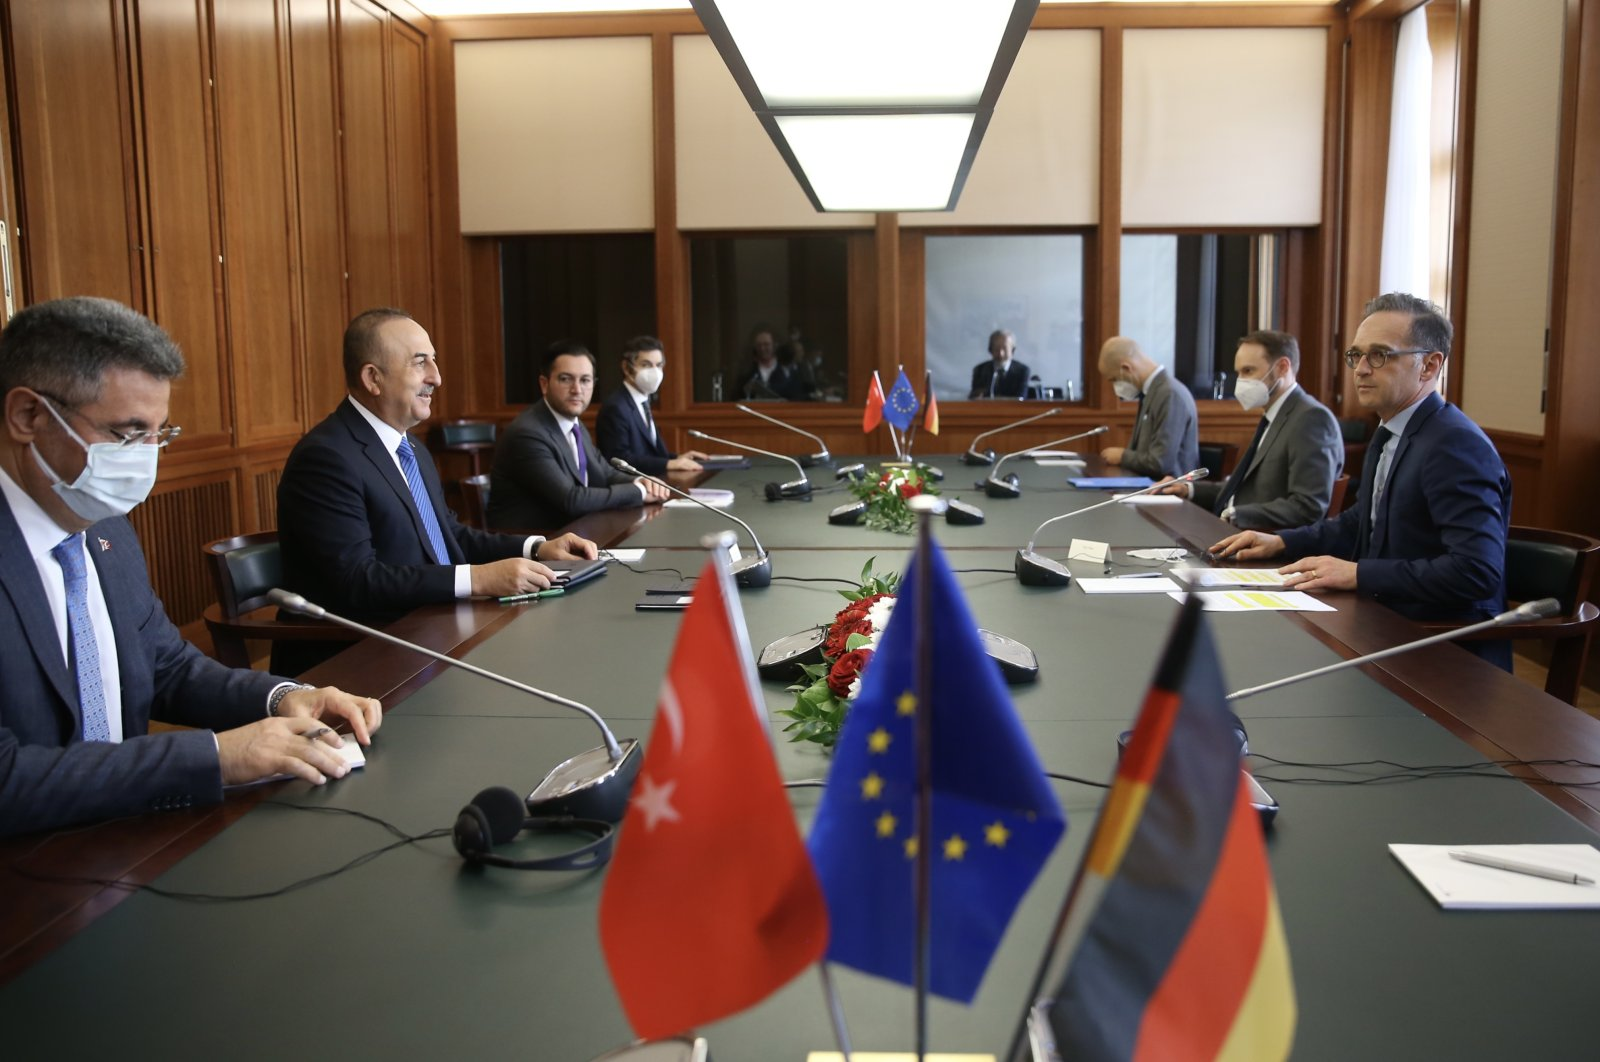 Foreign Minister Mevlüt Çavuşoğlu attends a meeting with German Counterpart Heiko Maas in Berlin, Germany, May 6, 2021. (AA Photo)